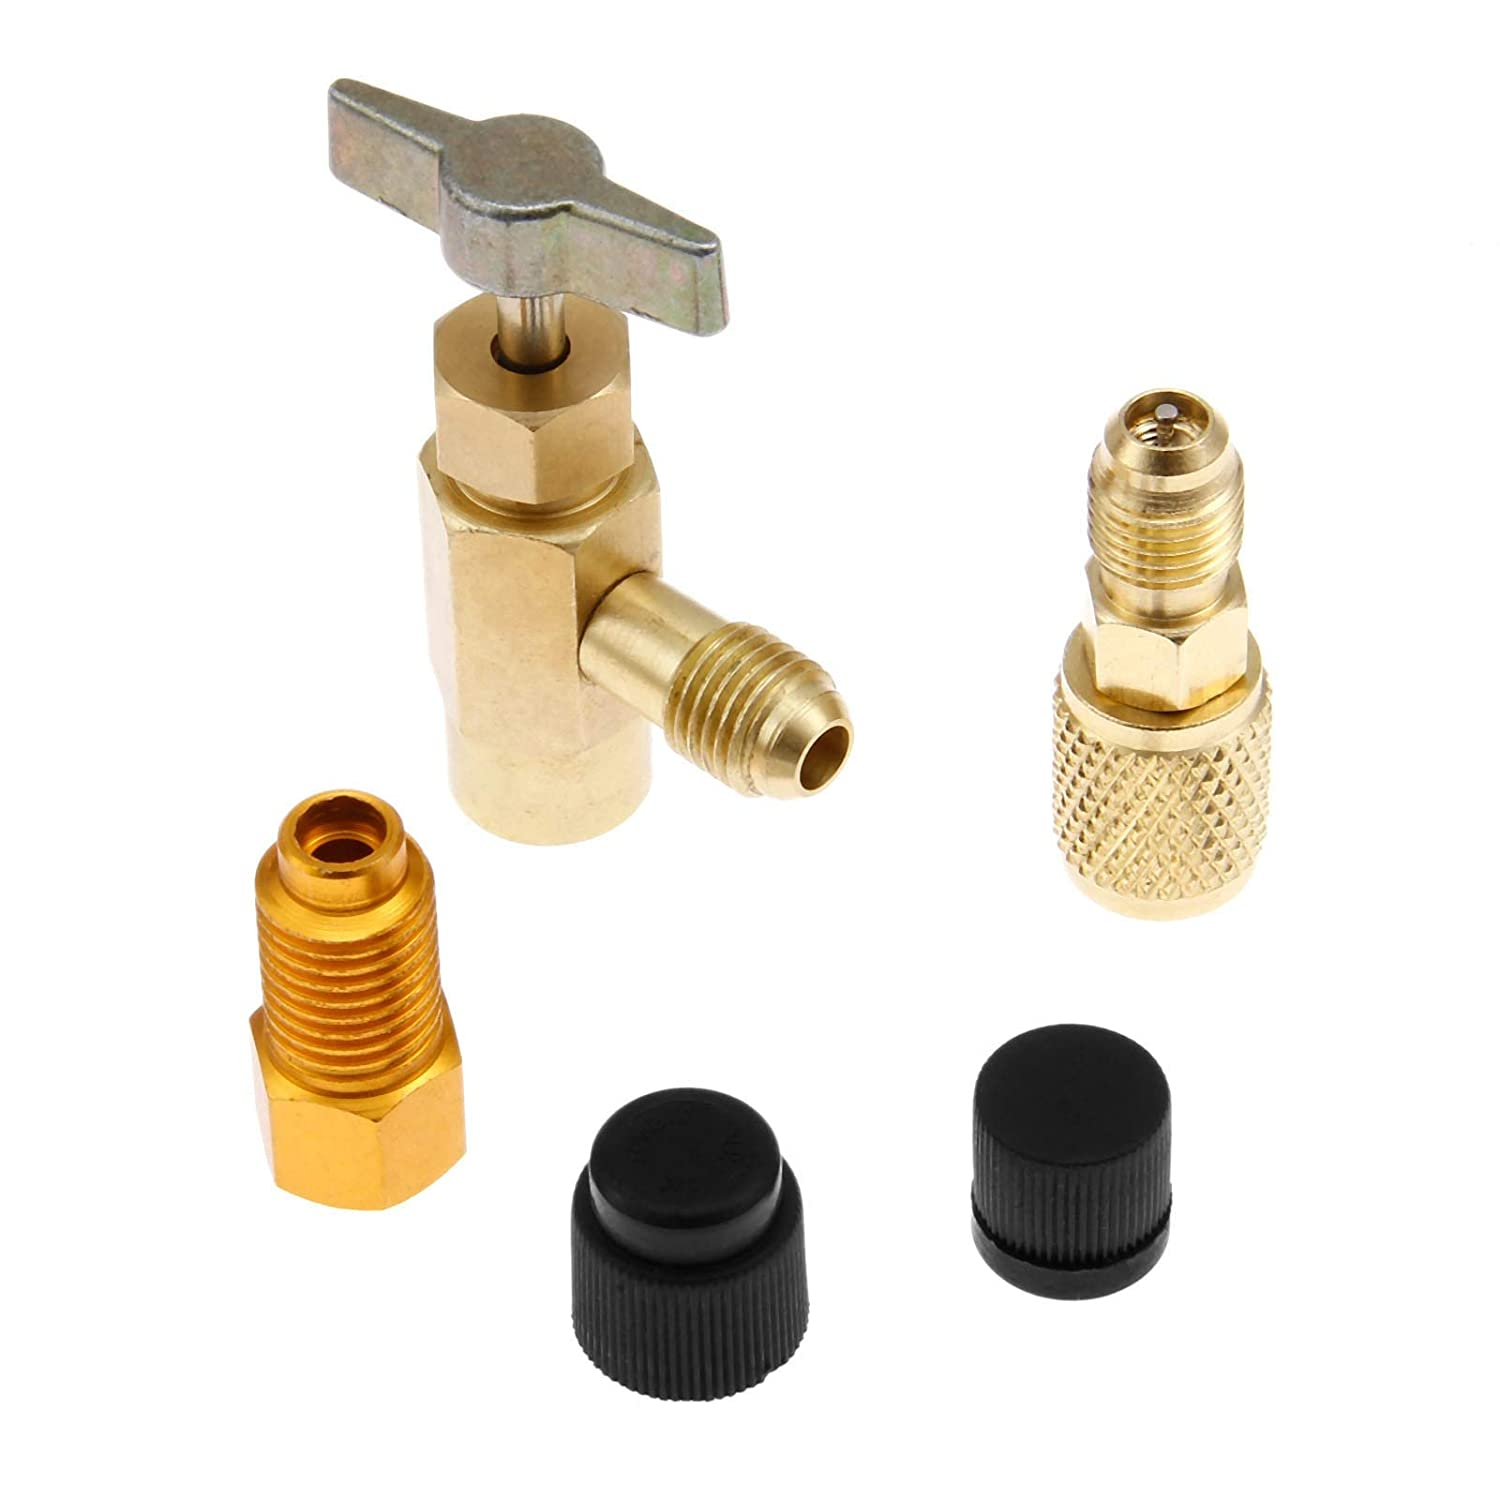 AjaxStore R-1234yf Can Tap Kits Brass Air-conditioning Adapters 1//2 Female x 1//4 Male ACME Valve Core A//C System Seal Caps